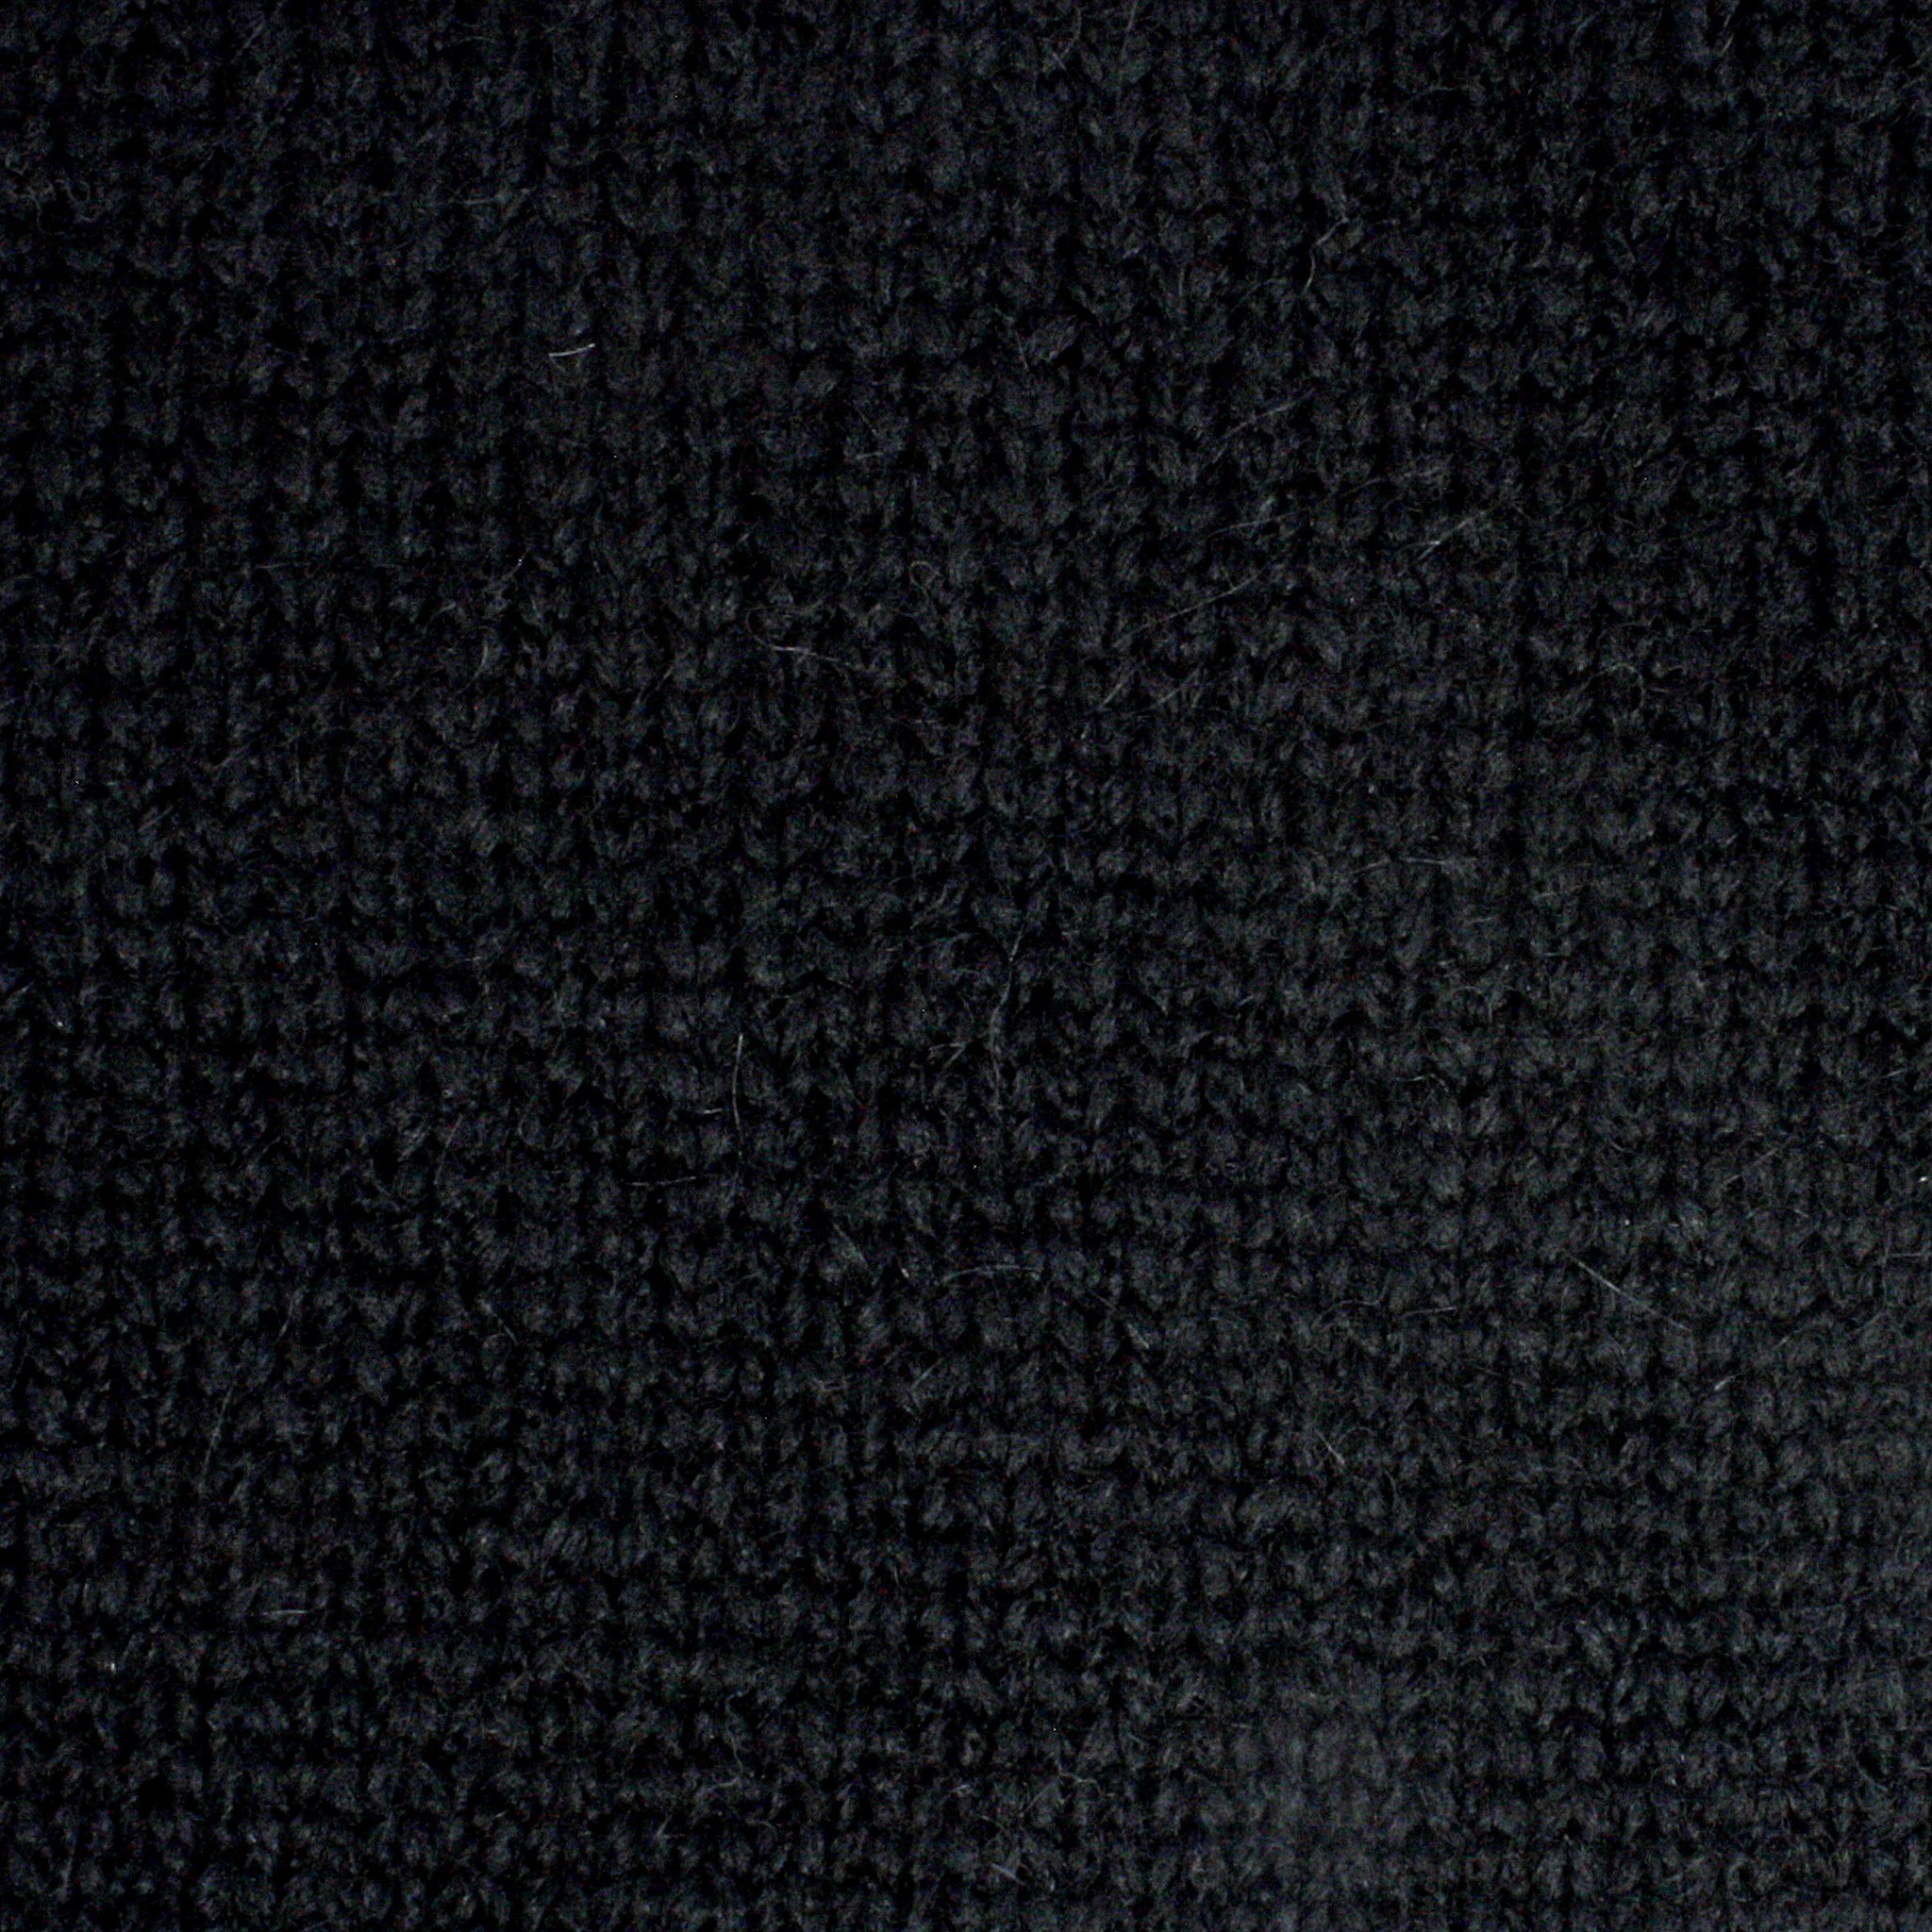 Lang Yarns Respect - 004 - Black